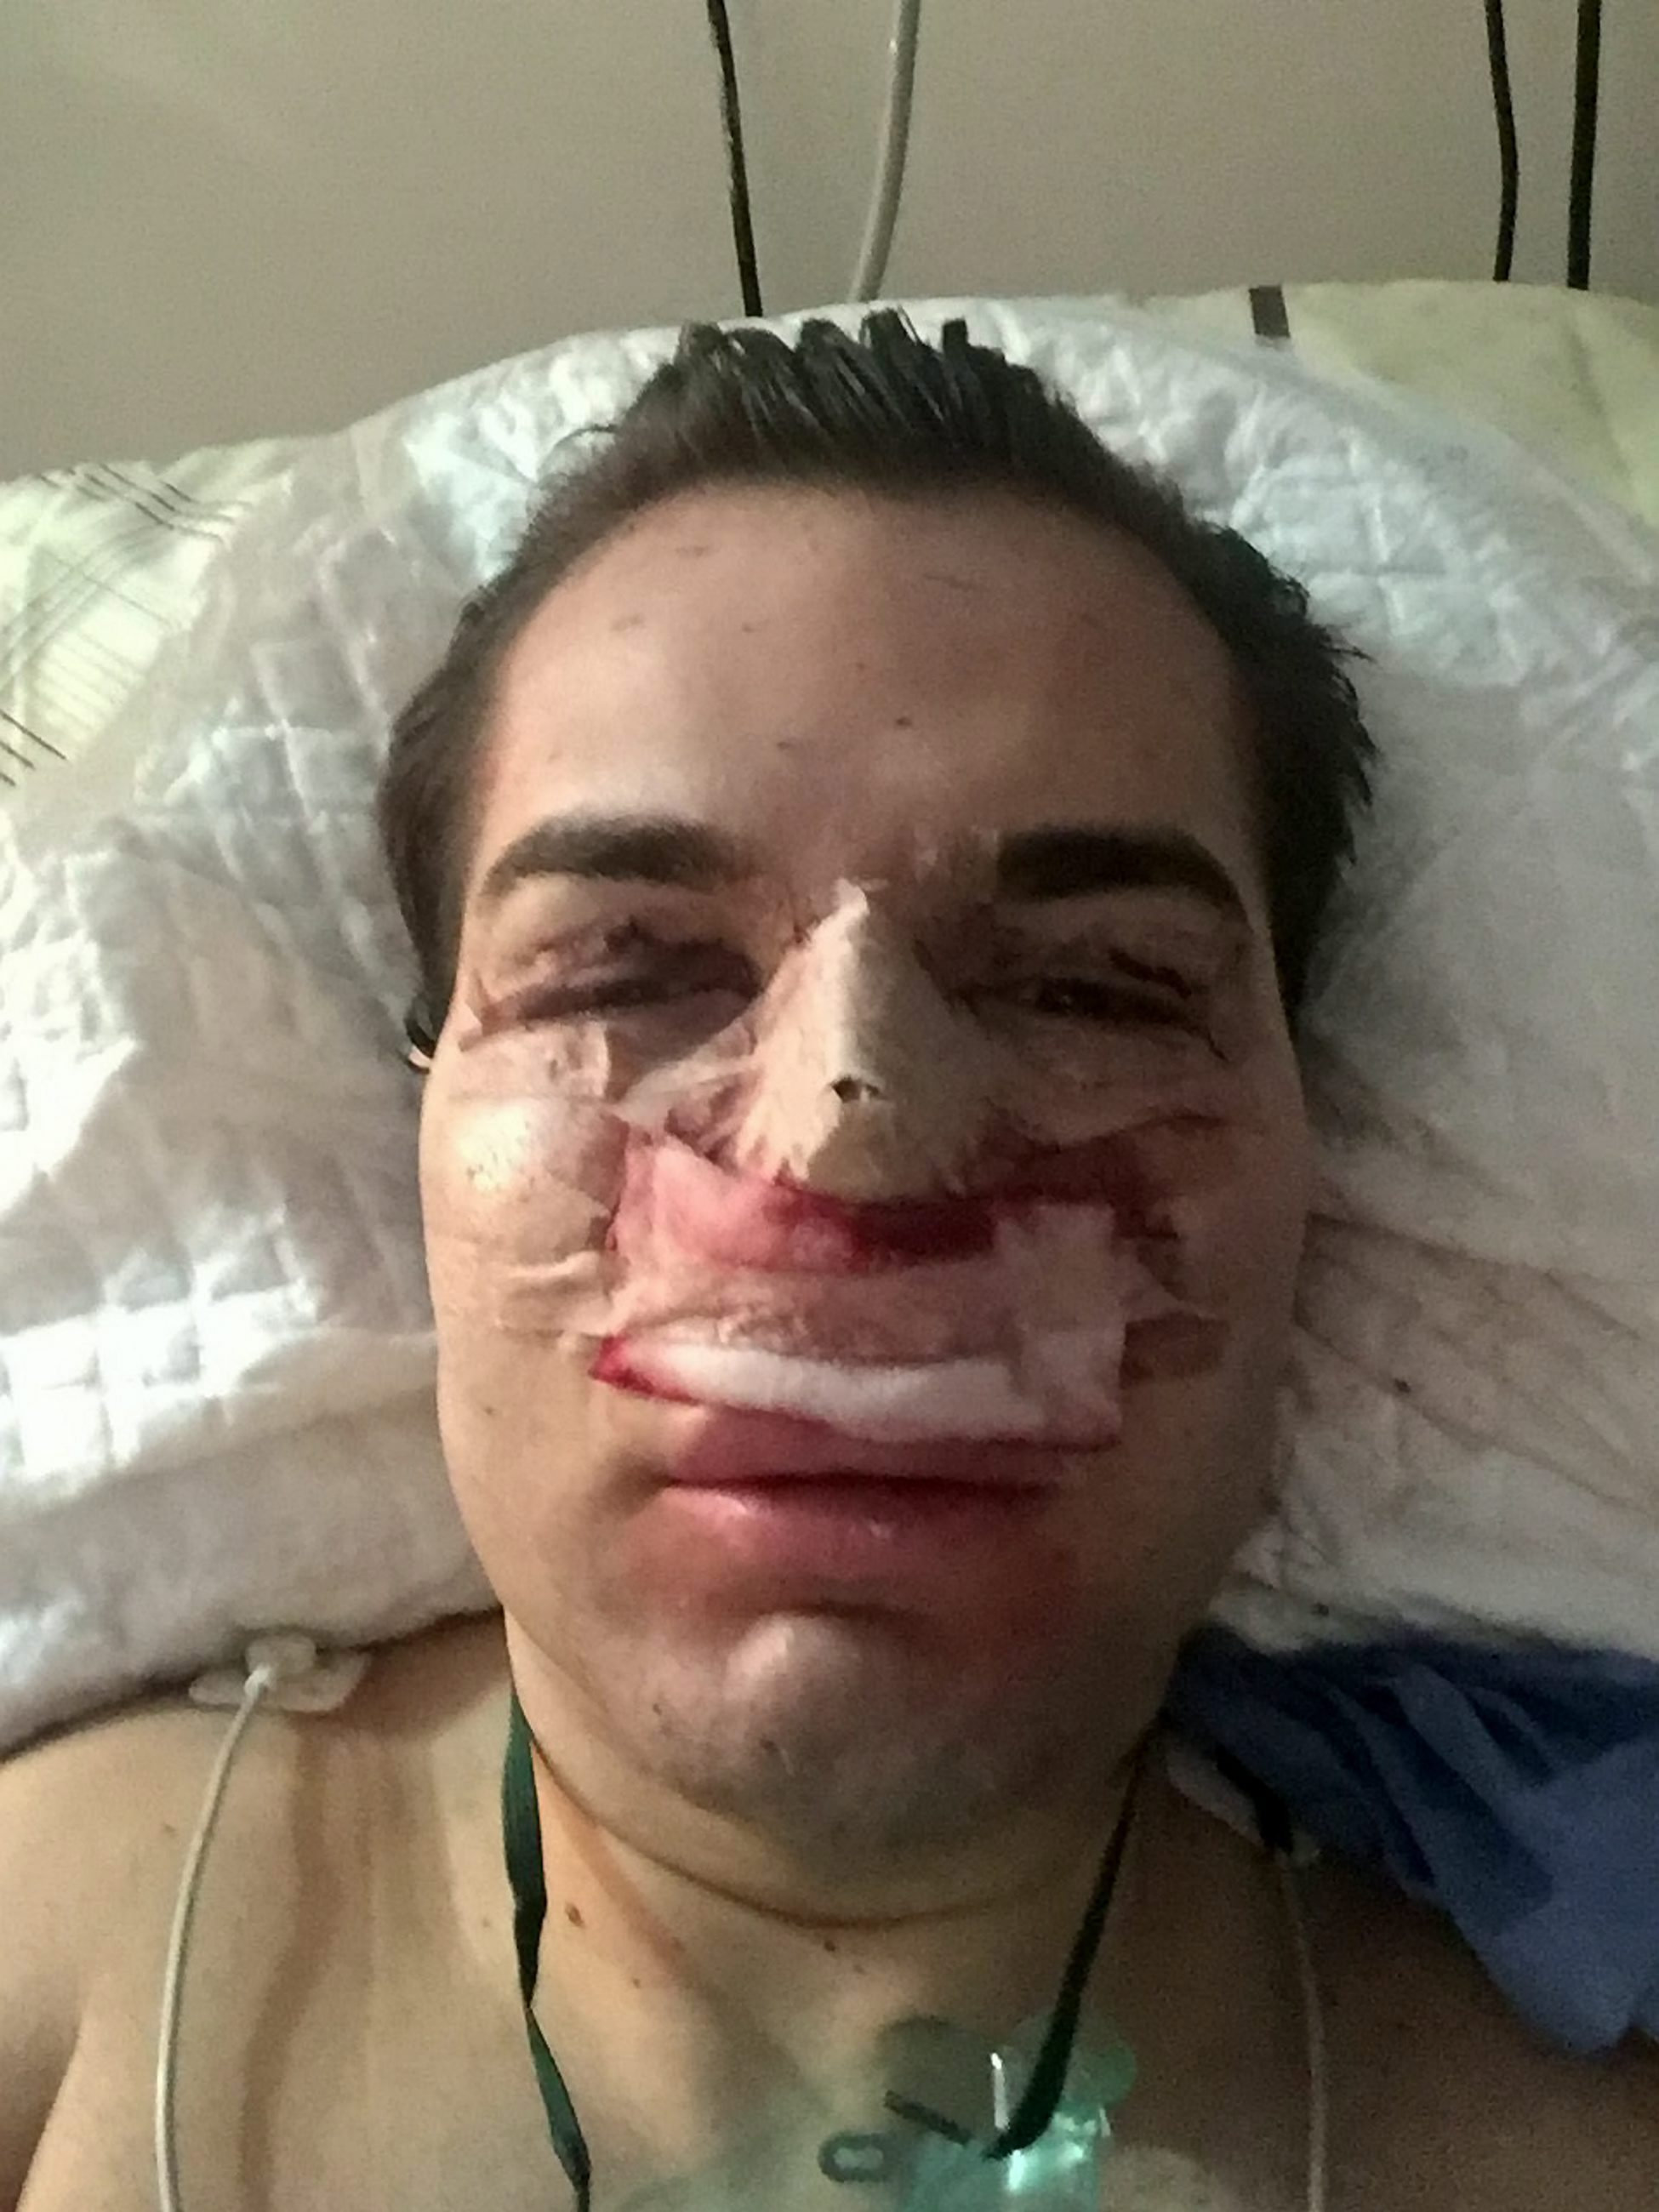 Plastic Surgery Addict Admitted To Hospital With Rotting Nose nose66